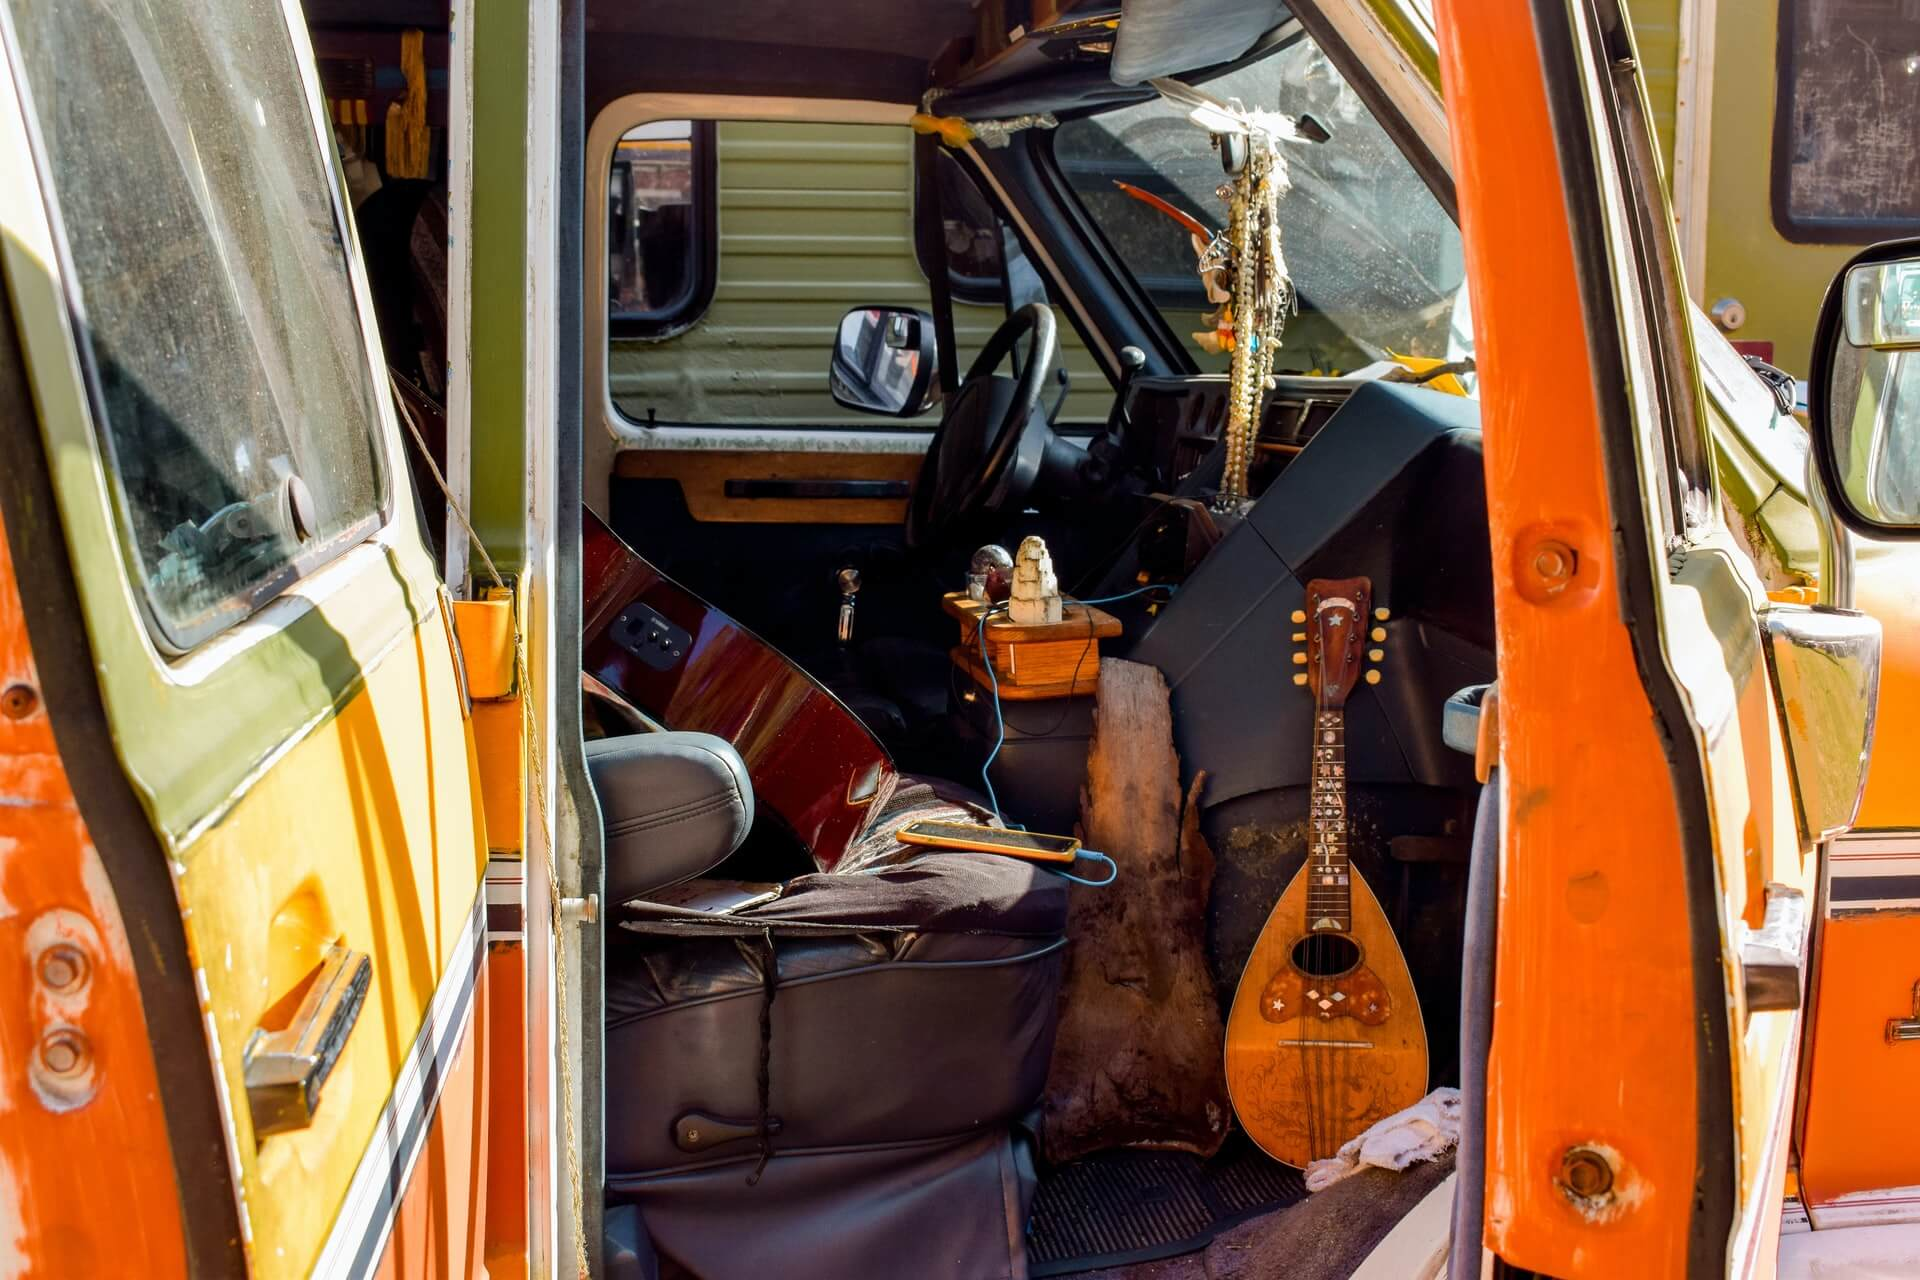 A packed motorhome filled with my favourite essential item for RV camping - instruments